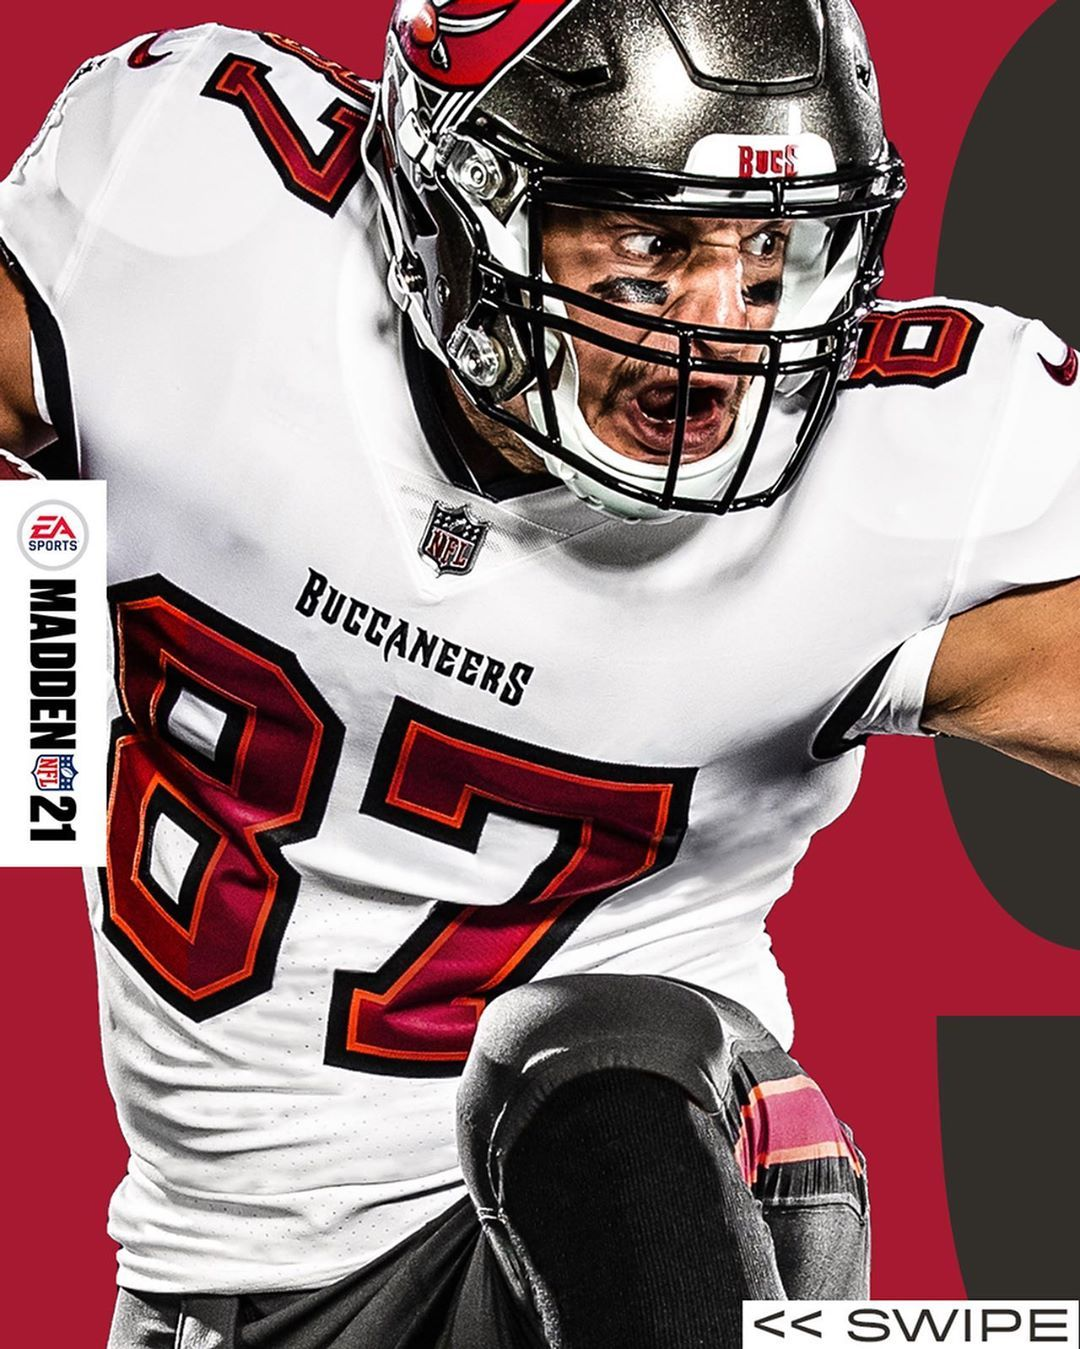 Tampa Bay Buccaneers S Instagram Post The 9 0 Club Who S Missing Eamaddennfl Madde Tampa Bay Buccaneers Buccaneers Tampa Bay Buccaneers Football